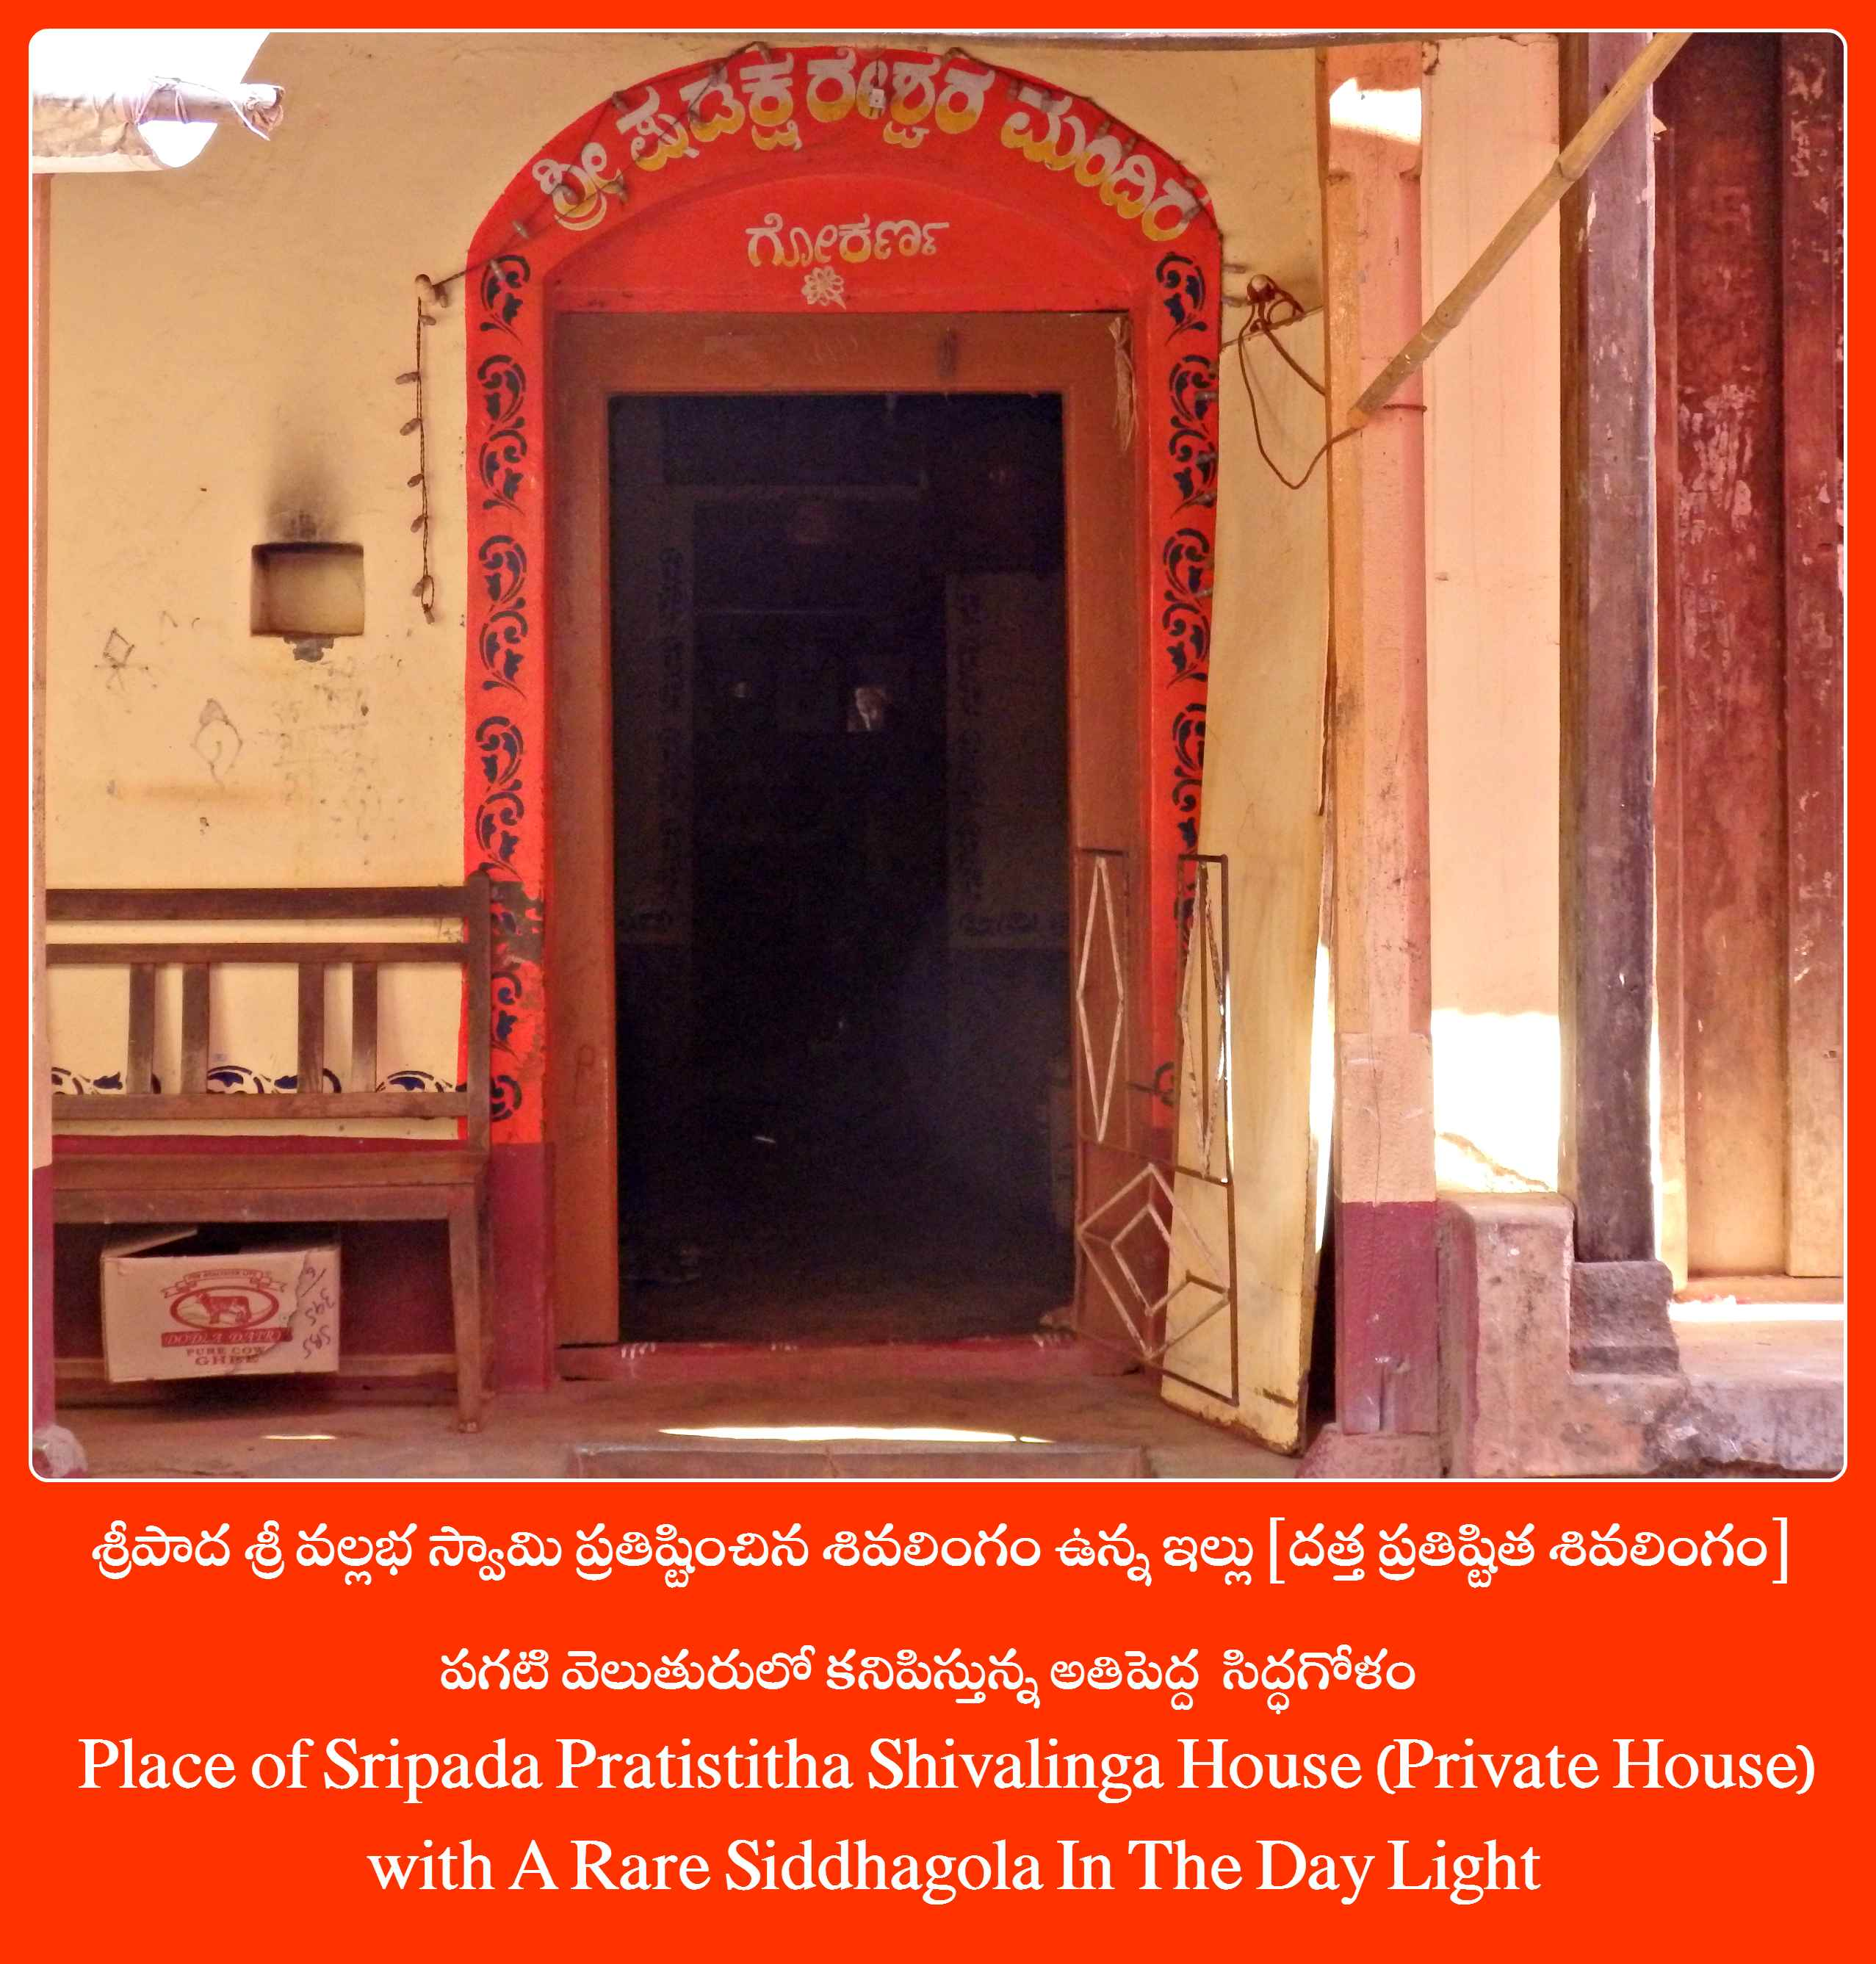 Sripada Vallabha Pratistitha Datta Shivlinga Temple with A Rare Siddhagola In The Day Light - Gokarna